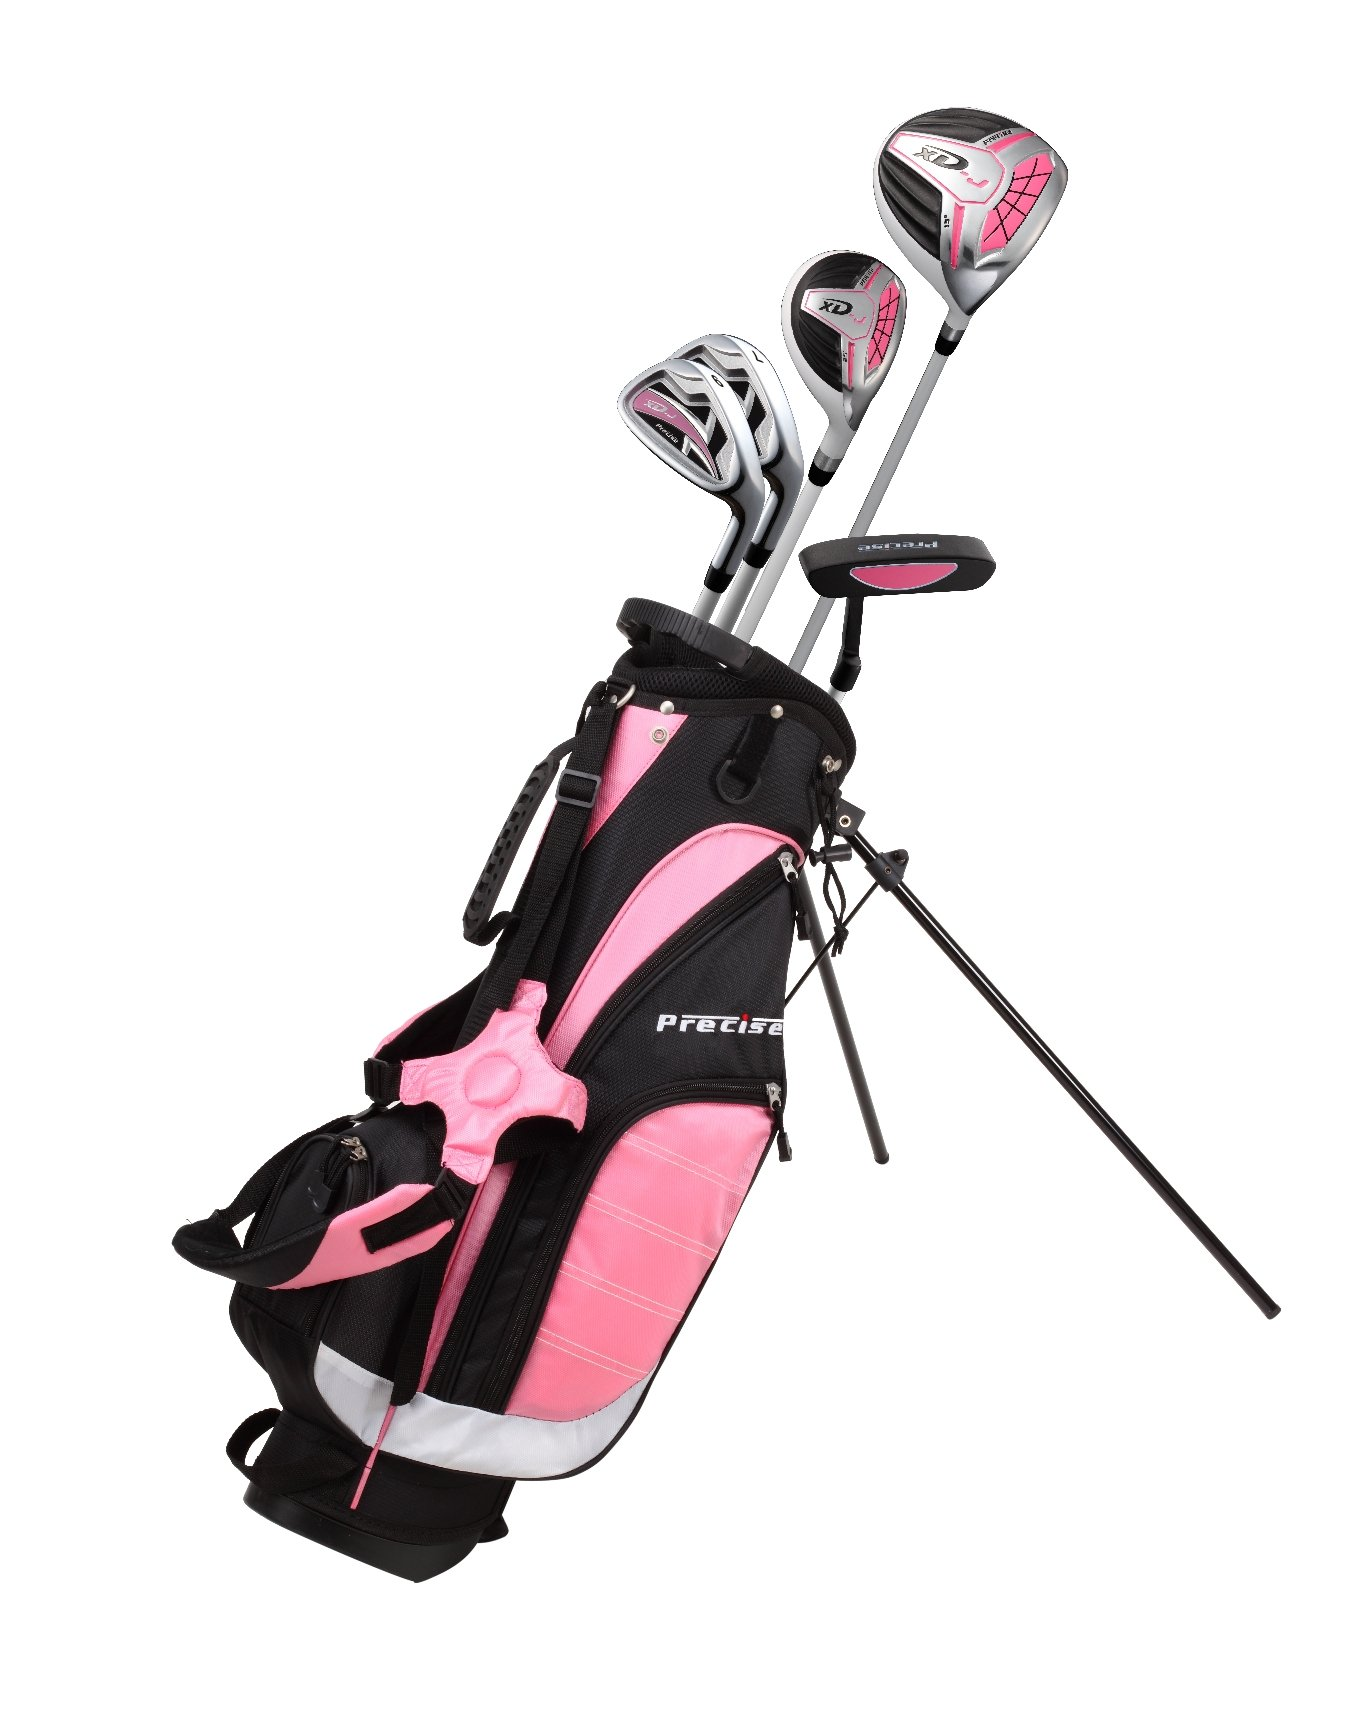 Precise XD-J Junior Complete Golf Club Set for Children Kids - 3 Age Groups Boys & Girls - Right Hand & Left Hand! (Pink Ages 9-12, Right Hand) by PreciseGolf Co.